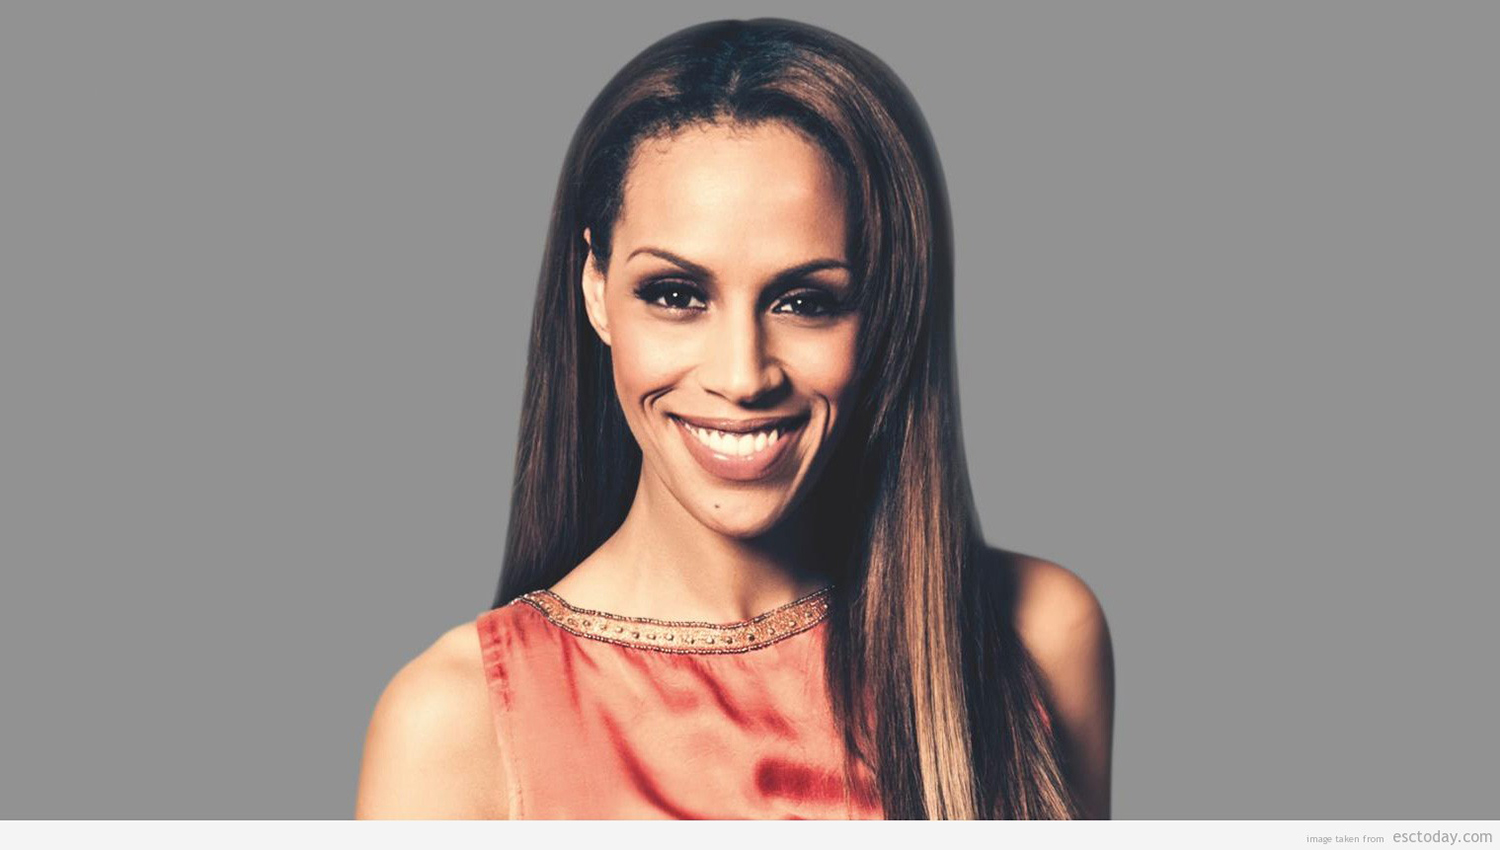 Eurovision The Netherlands: Glennis Grace to release new album